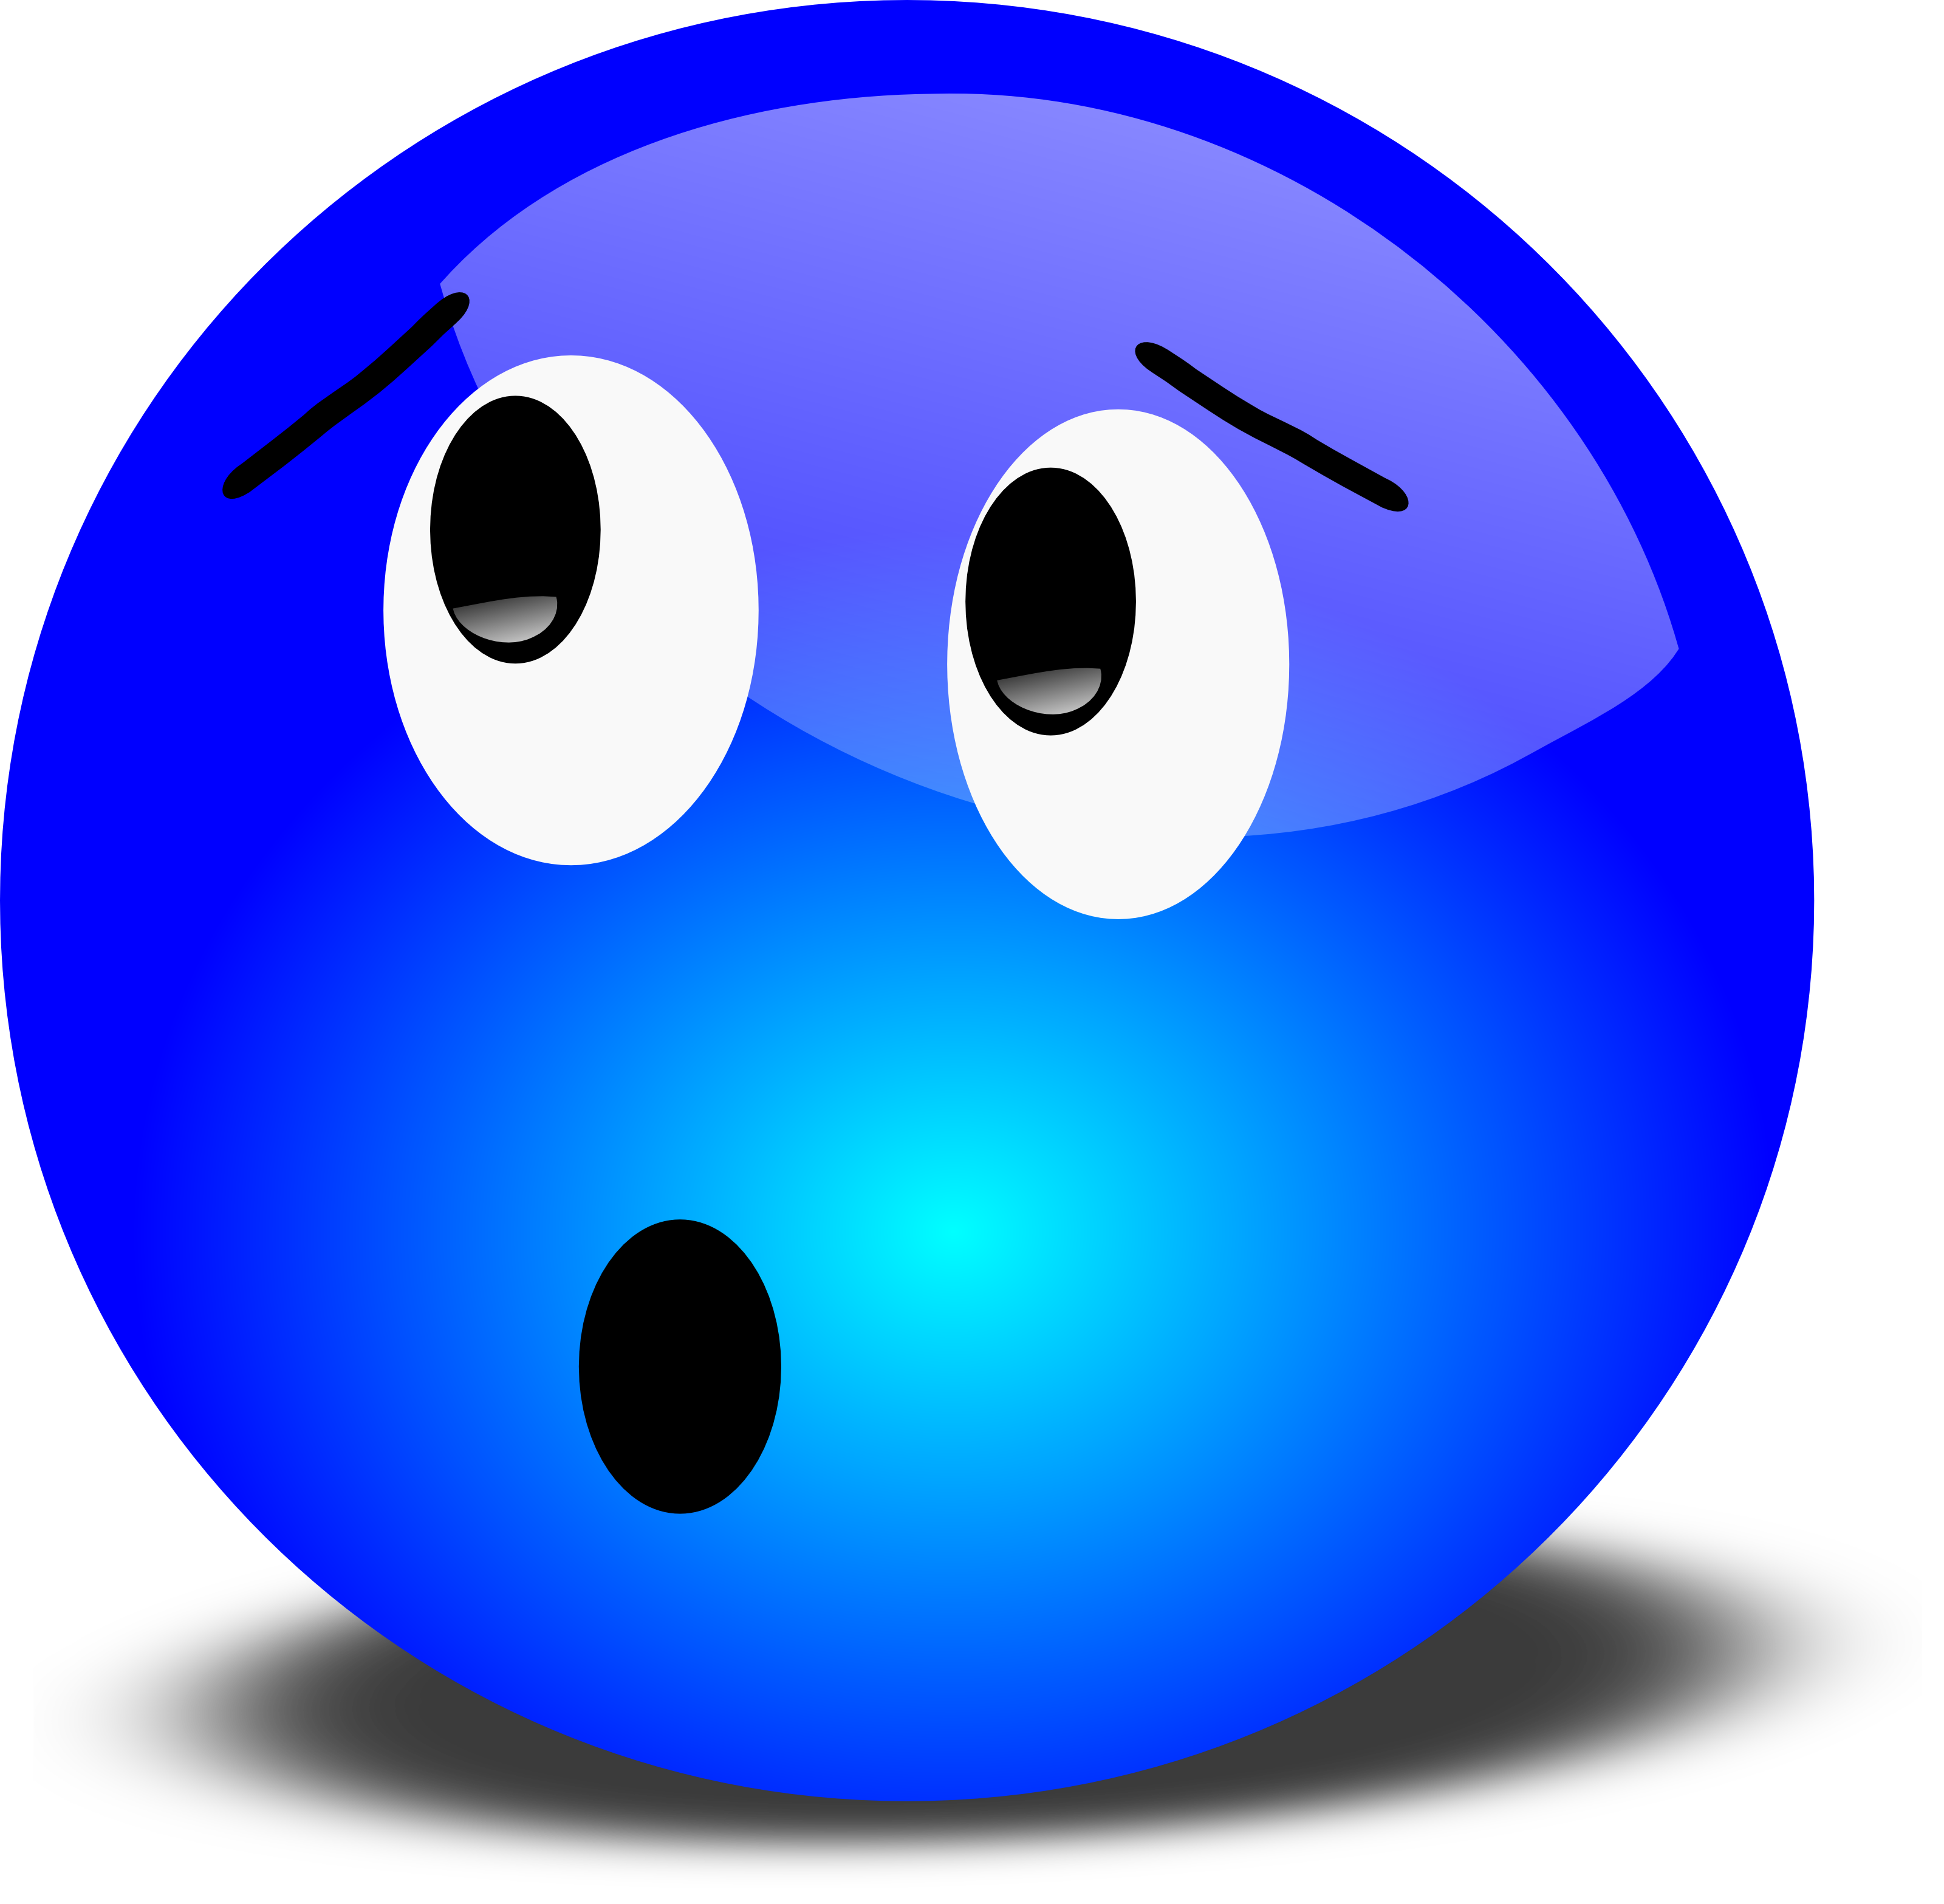 Worried Face Clip Art Free 3D Worried Smiley Face